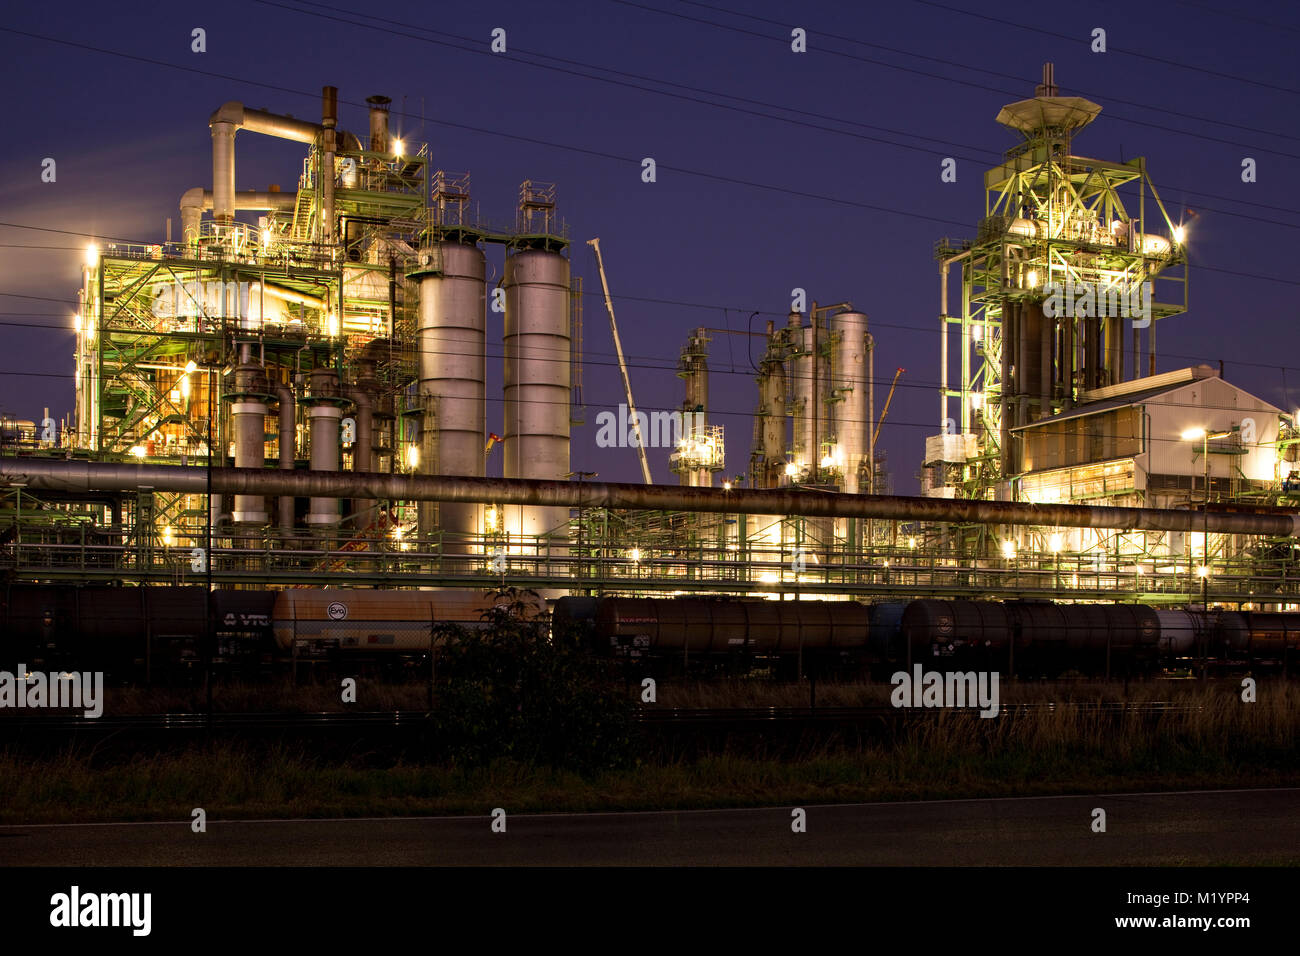 Chemical plant in Dormagen, Germany - Stock Image